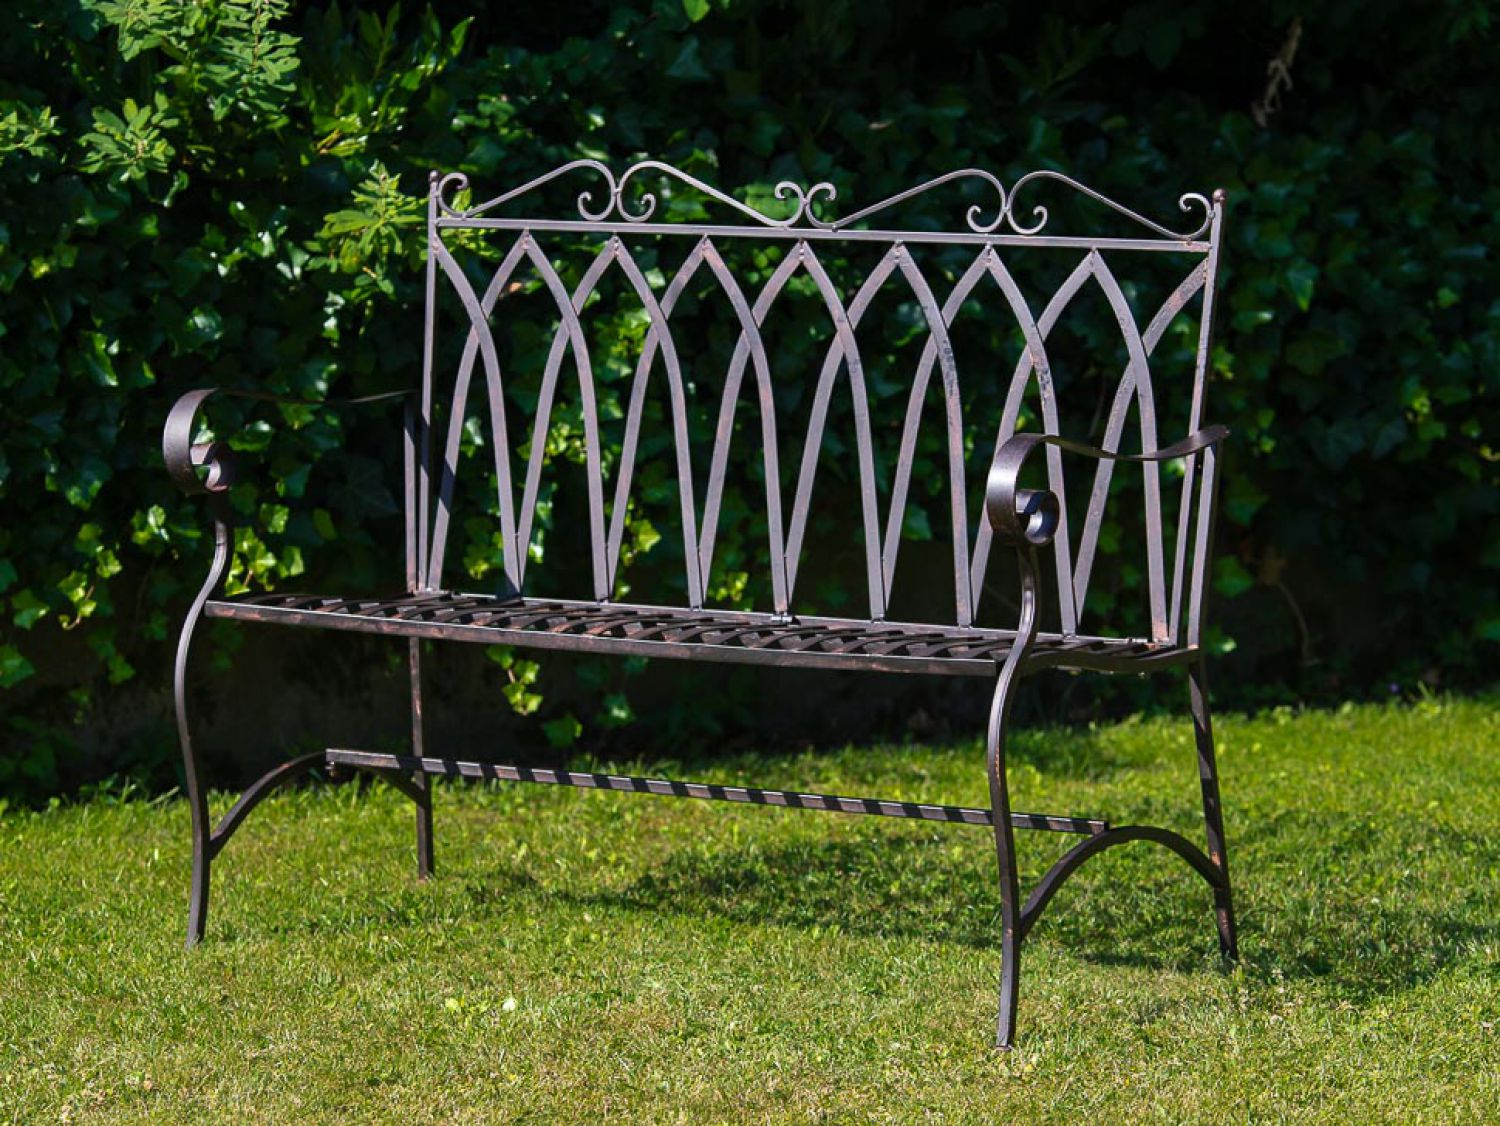 Furniture Store Browns Plains Decorative Outdoor Furniture Bench Antique Style